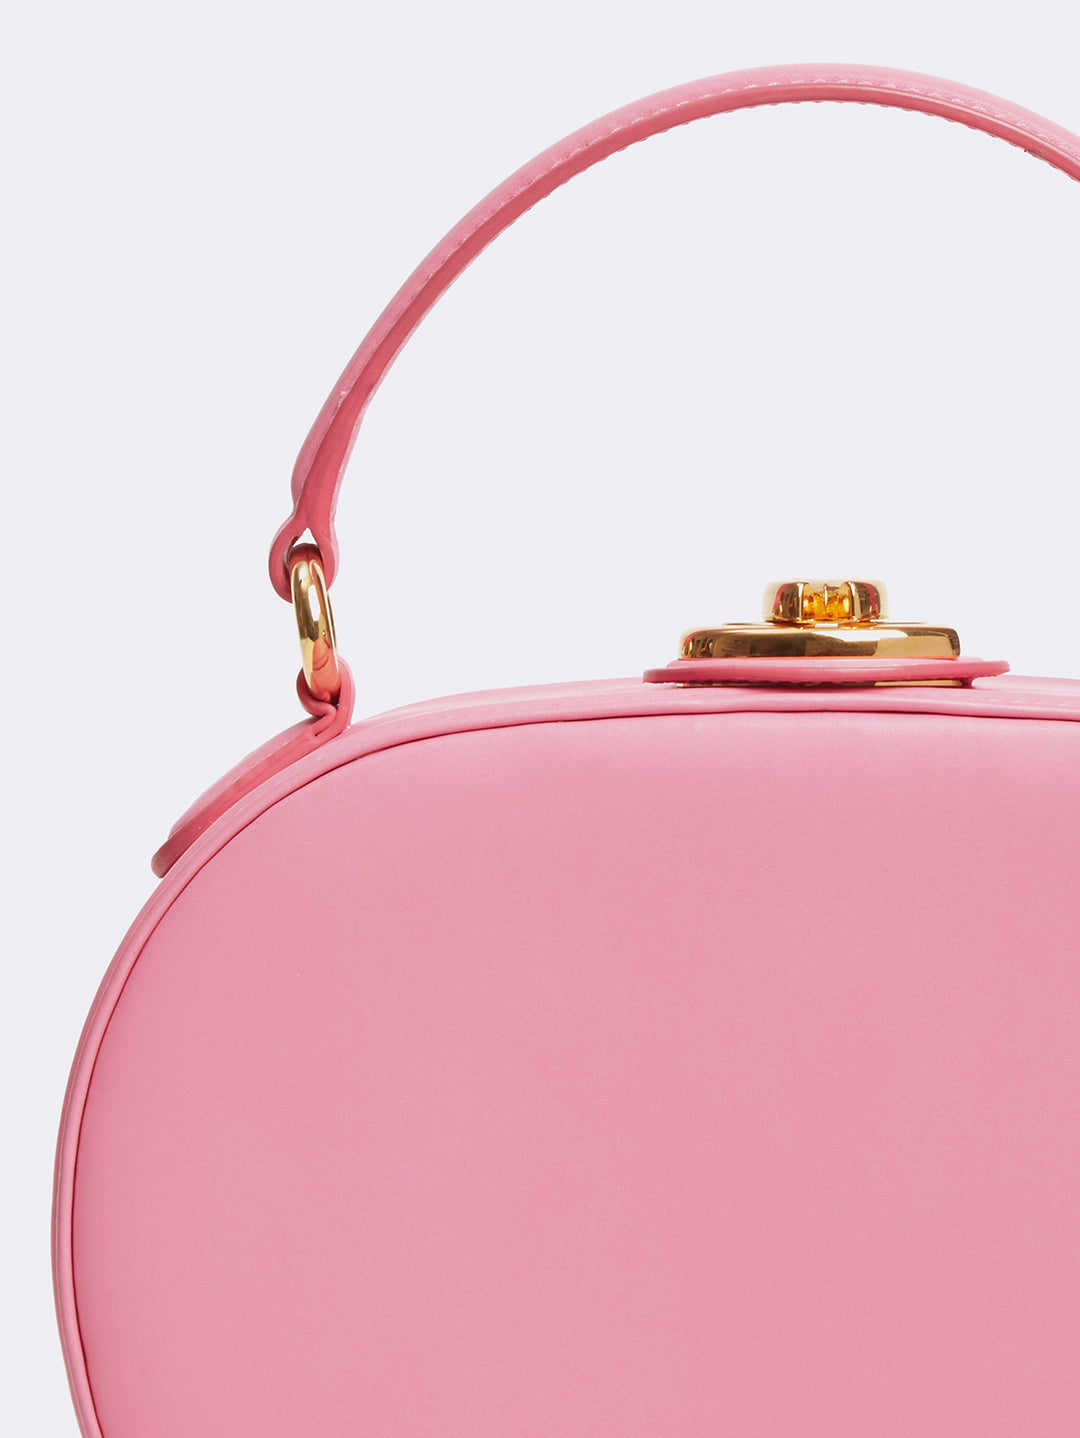 Mark Cross Gianna Leather Oval Box Bag Soft Calf Flamingo Detail